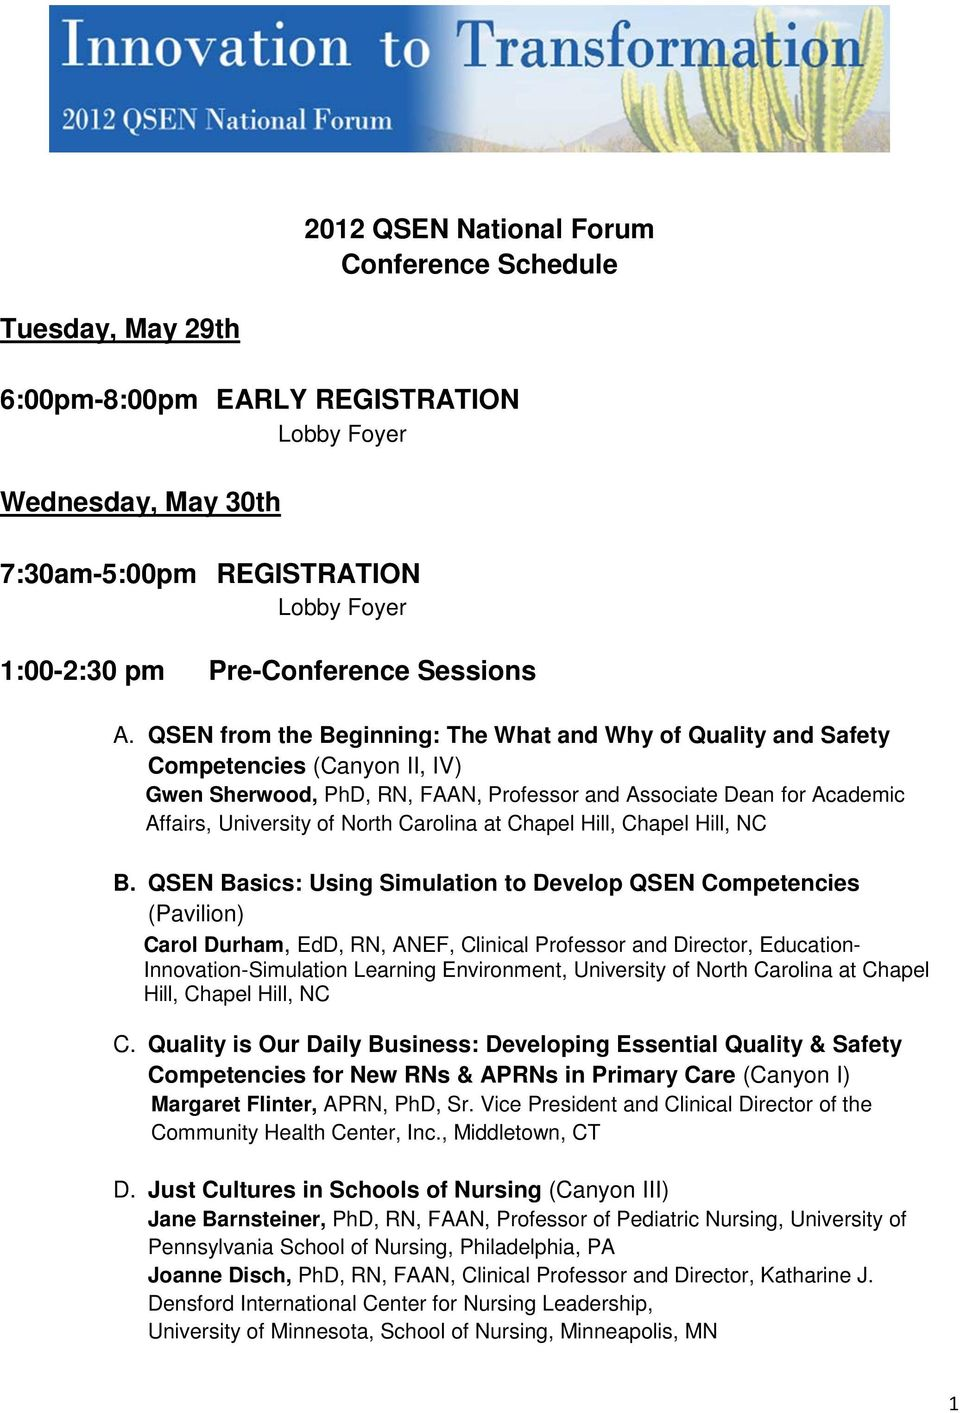 QSEN from the Beginning: The What and Why of Quality and Safety Competencies (Canyon II, IV) Gwen Sherwood, PhD, RN, FAAN, Professor and Associate Dean for Academic Affairs, University of North